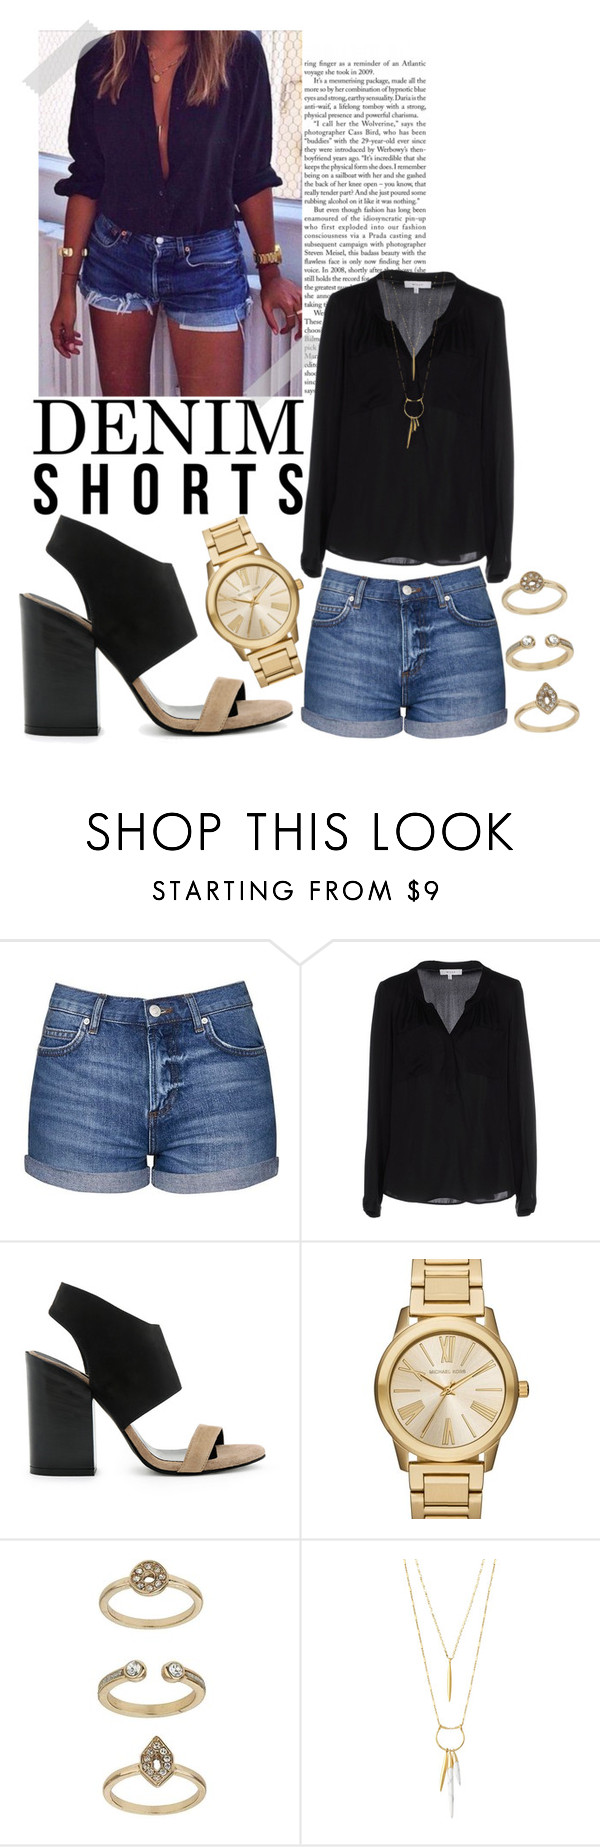 """""""The Final Cut: Denim Shorts (3)"""" by sc-styles ❤ liked on Polyvore featuring Topshop, Milly, Dee Keller, MICHAEL Michael Kors and Stella & Dot"""